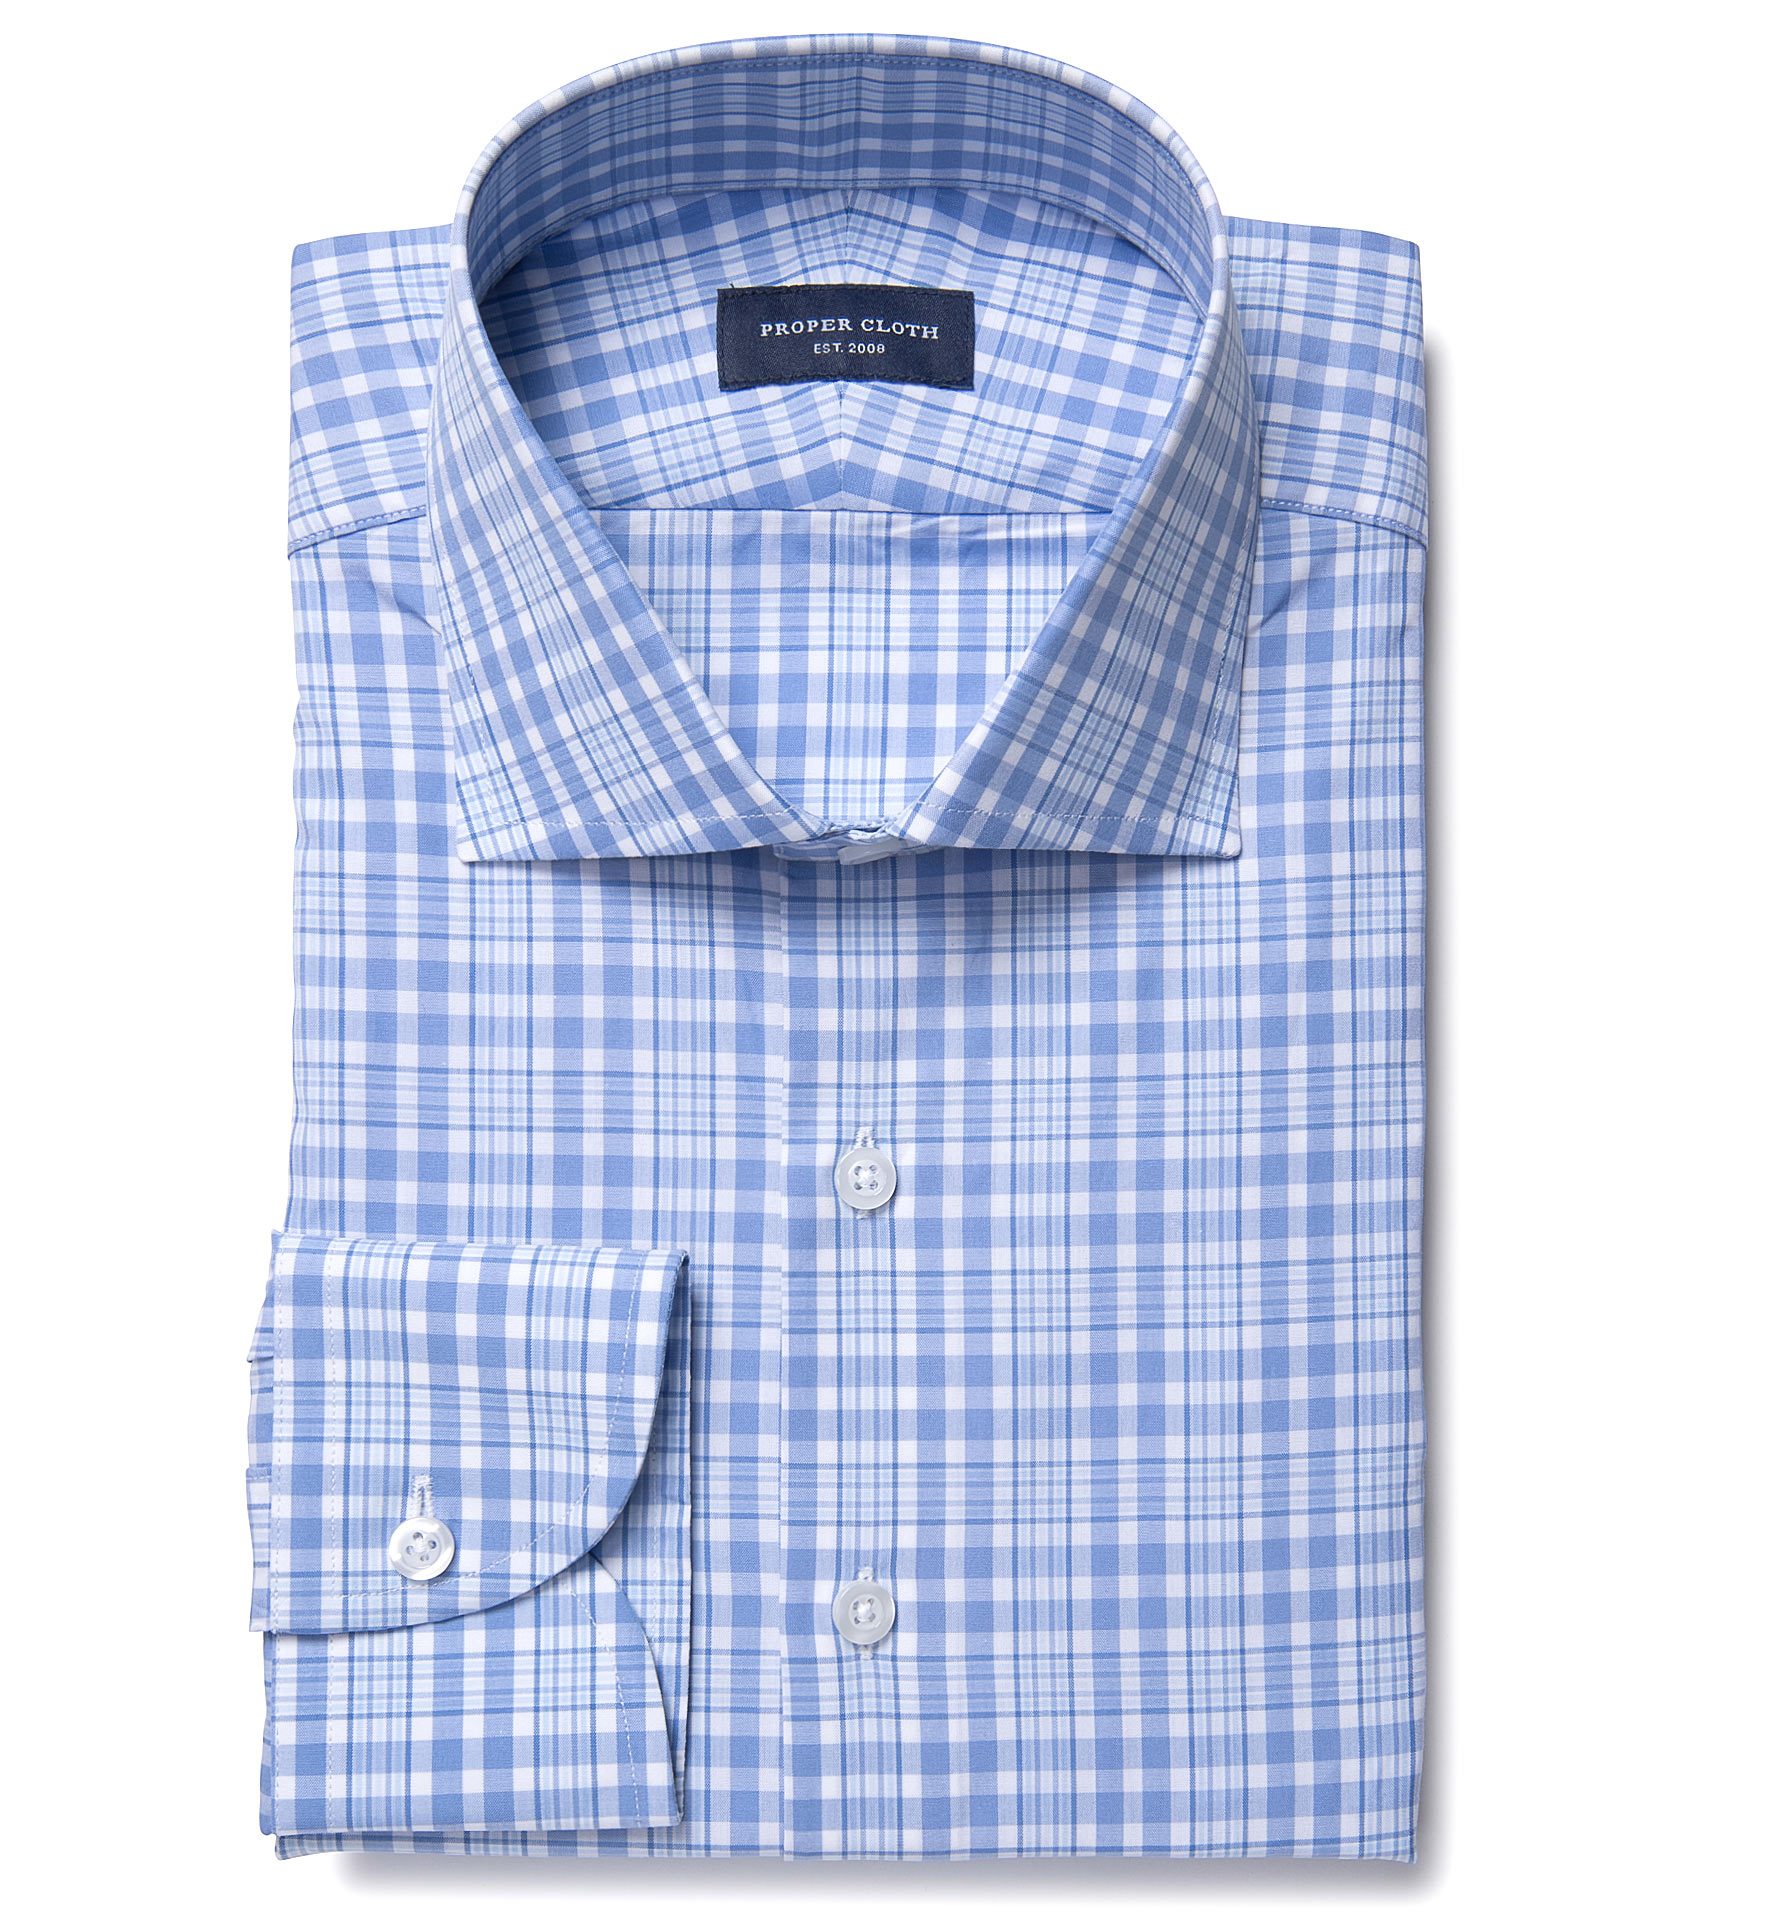 Amalfi ocean blue multi check custom dress shirt by proper for Proper cloth custom shirt price